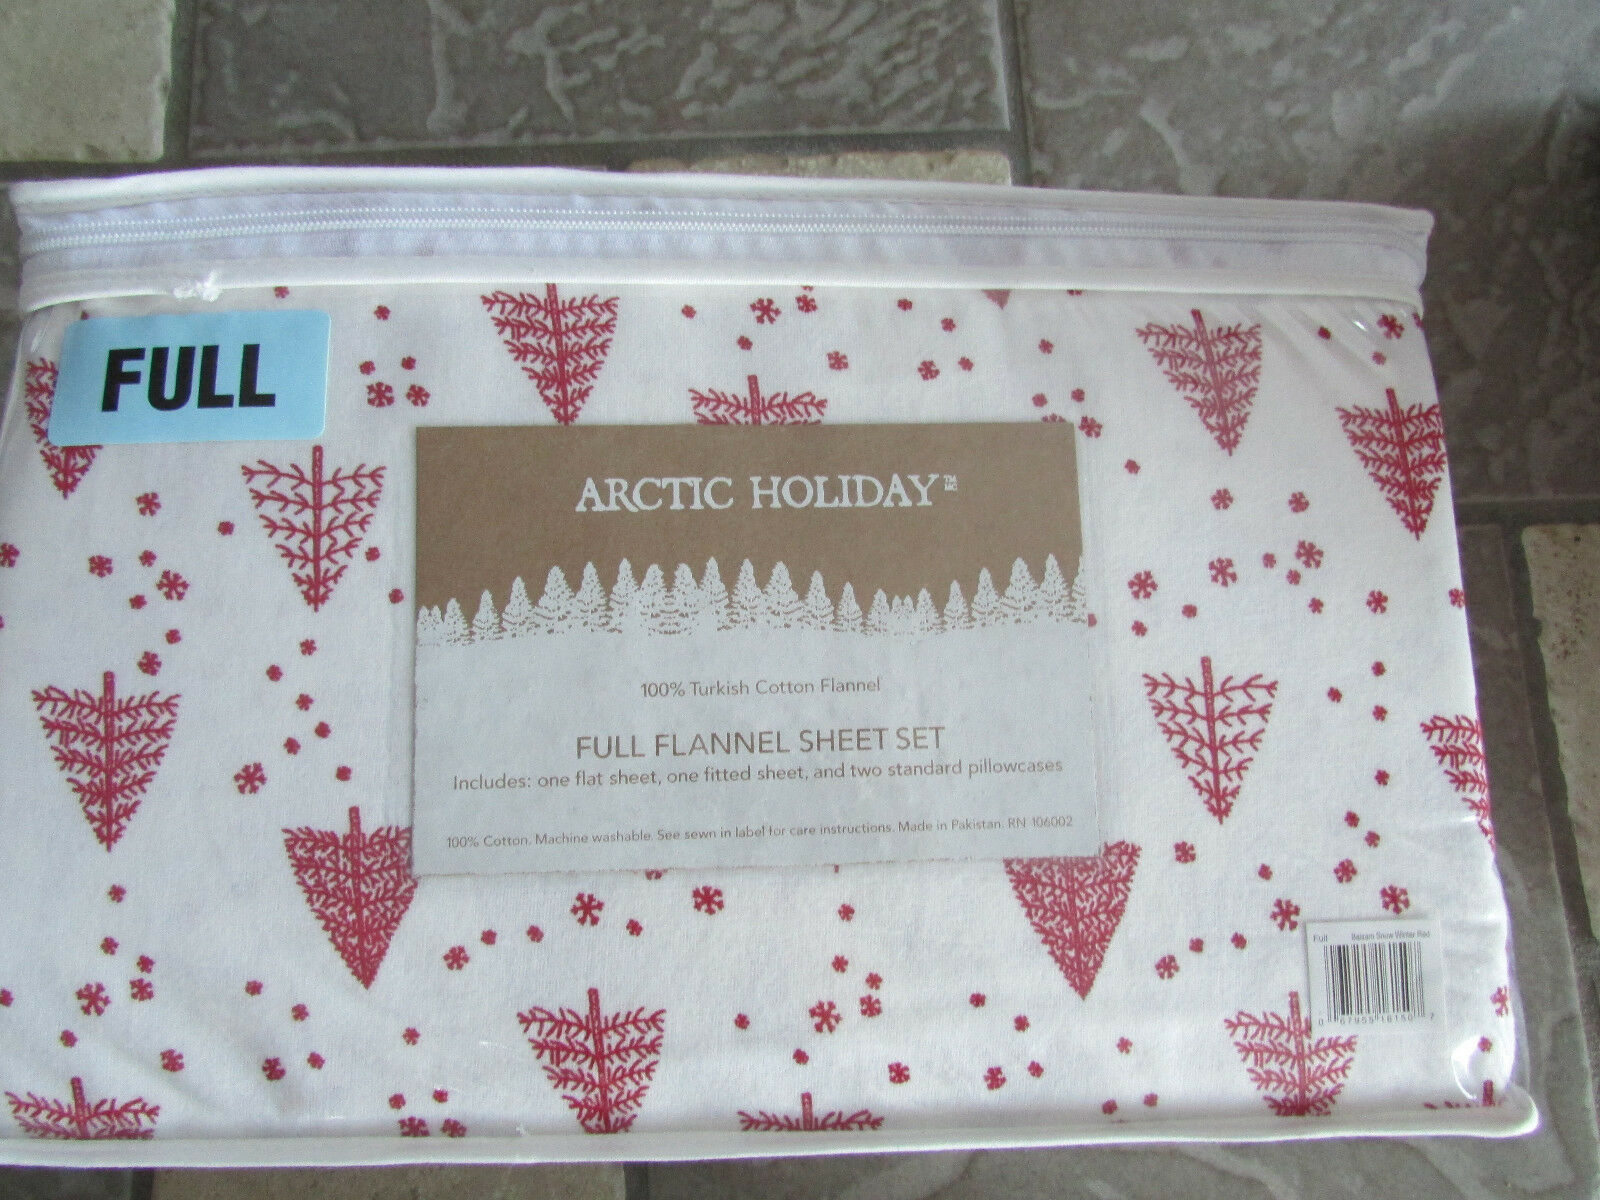 NEW FULL FLANNEL SHEET SET PINE TREE PRINT DOUBLE SIZE SHEET SET ARCTIC HOLIDAY